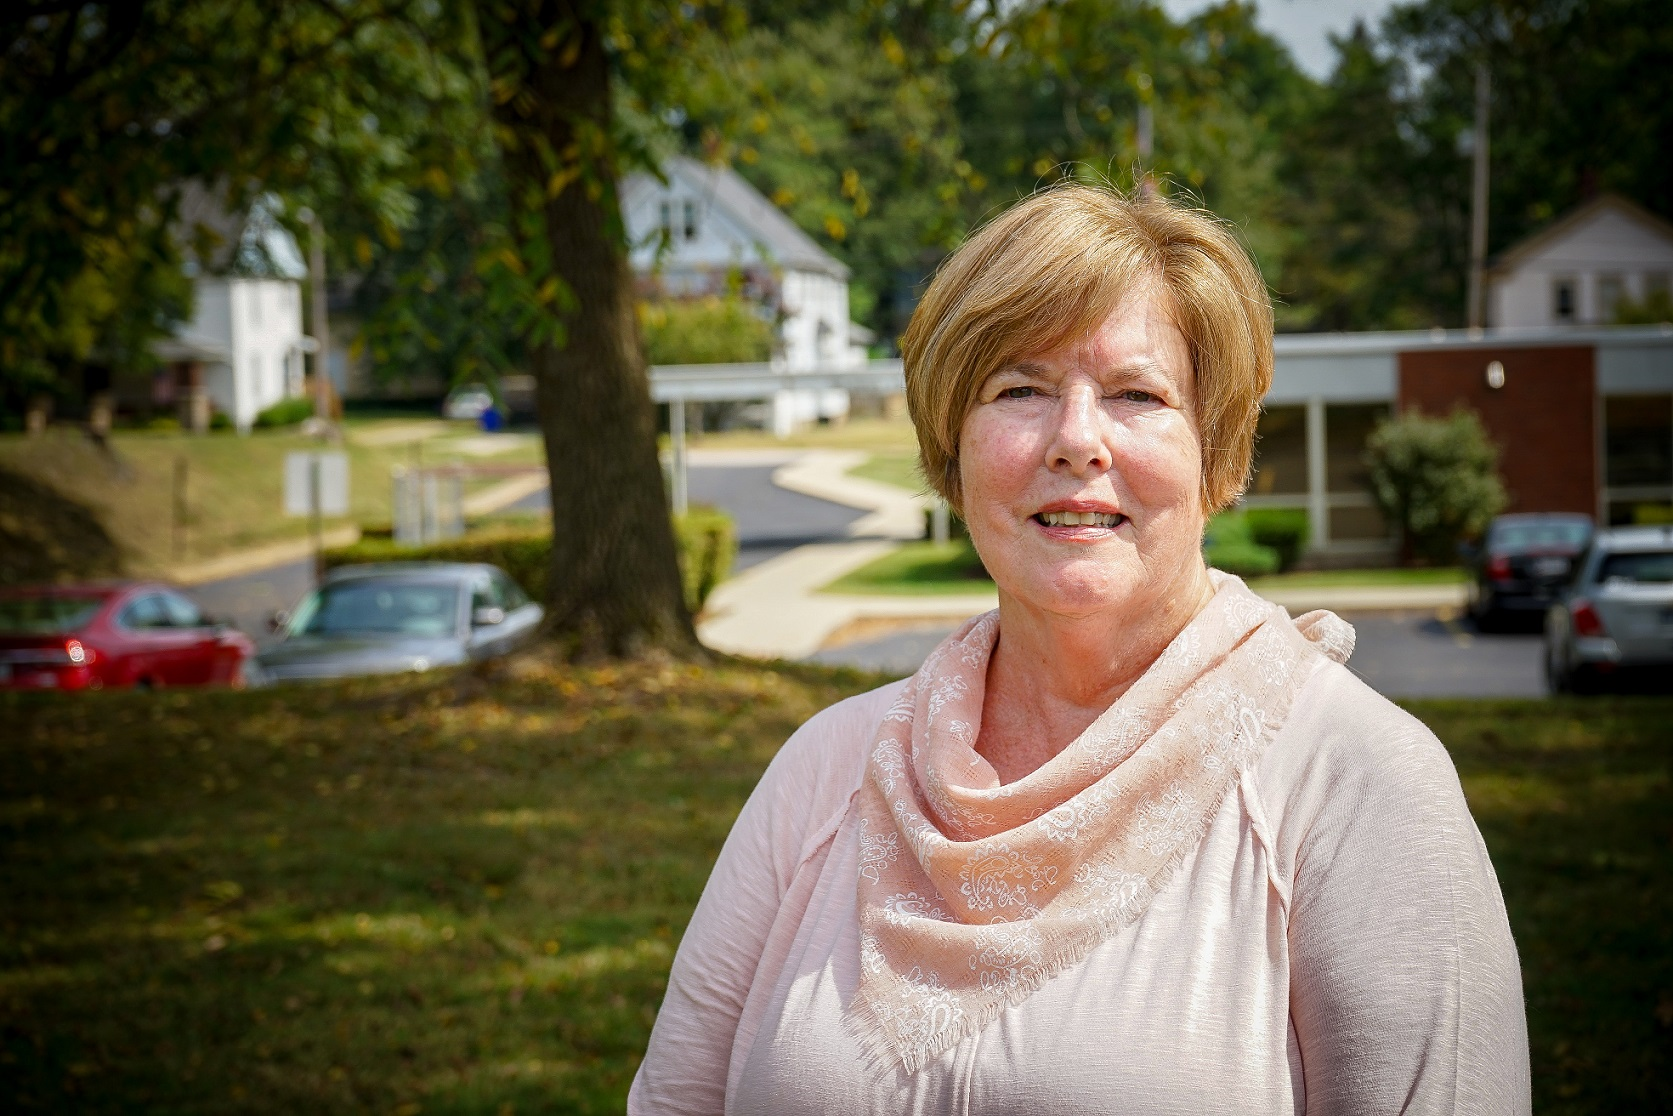 Kent State University alumna Pat Gless reflects on May 4, 1970, when she was a junior nursing major and how she assisted the nurses at the old Ravenna hospital in providing care for some of the injured.